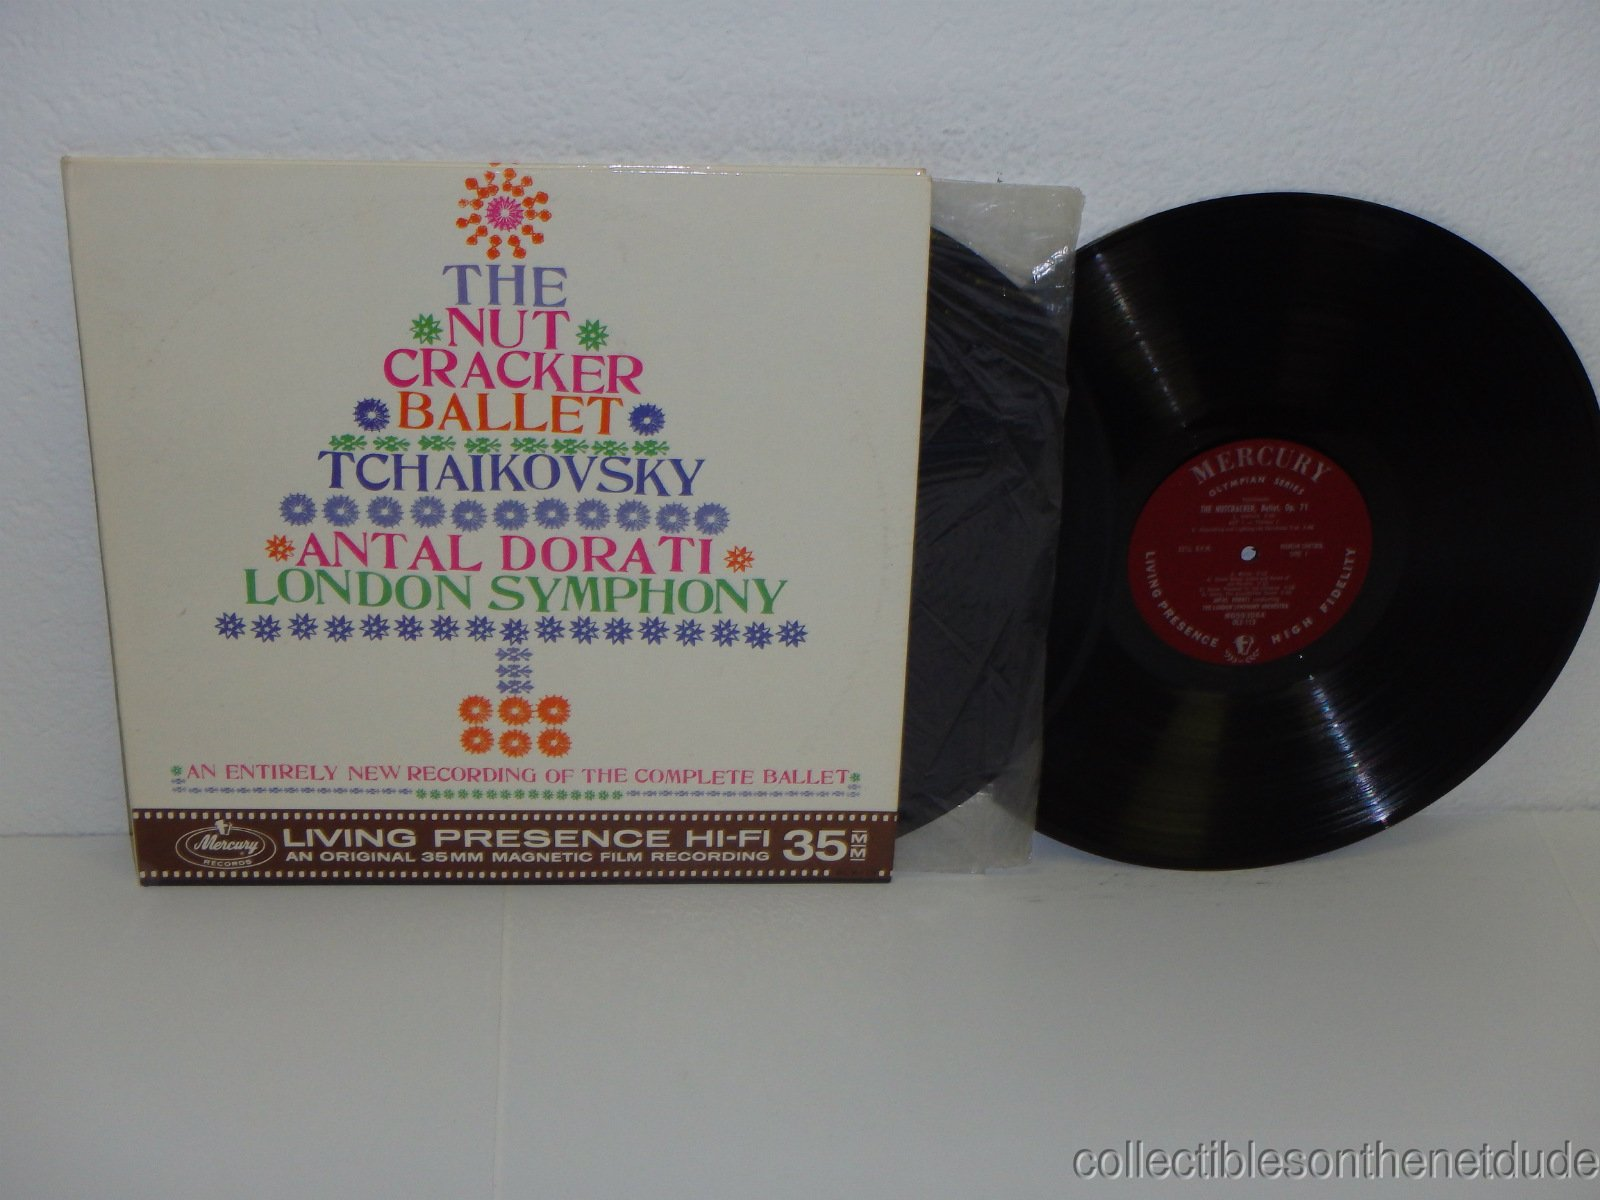 The Nutcracker Ballet -Tchaikovsky-Antal Dorati-London Symphony 2LP set by London -Mercury Living Presence